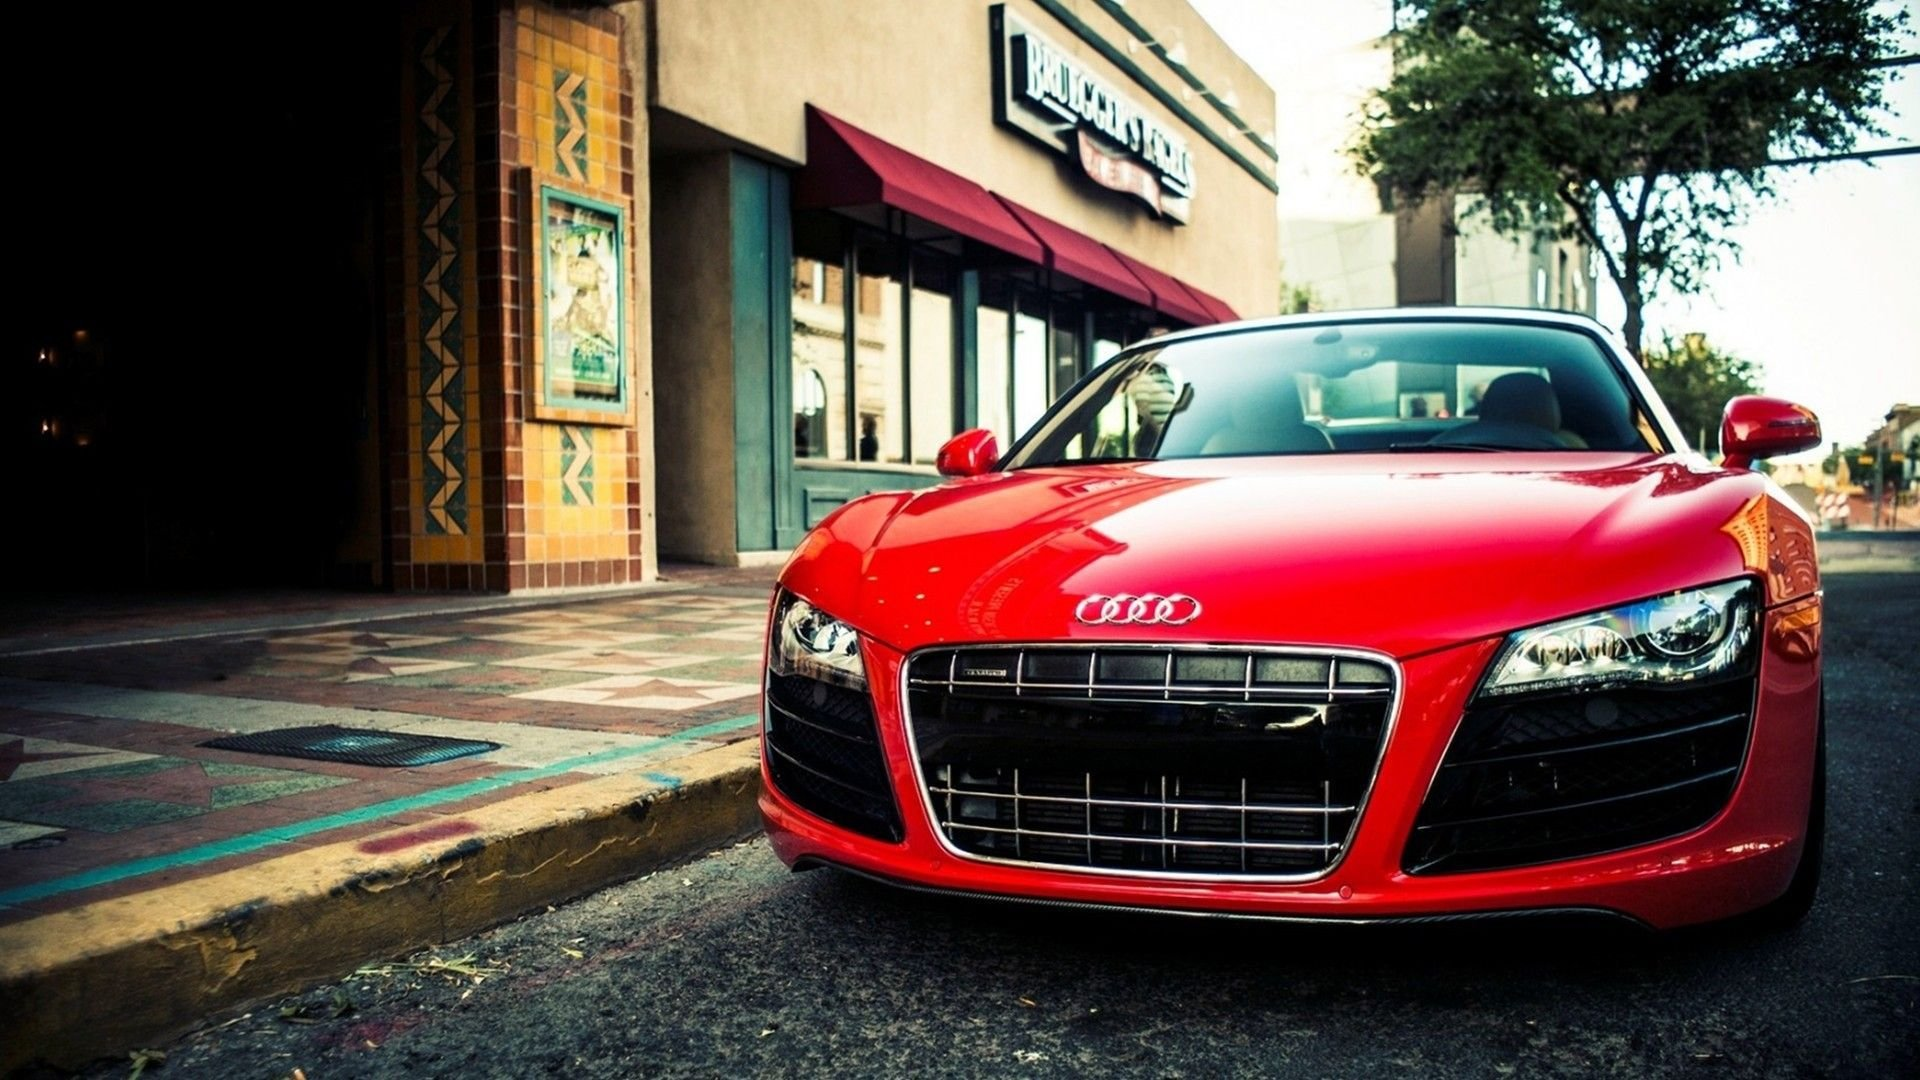 Latest Audi Wallpapers Free Download Http Whatstrendingonline Free Download